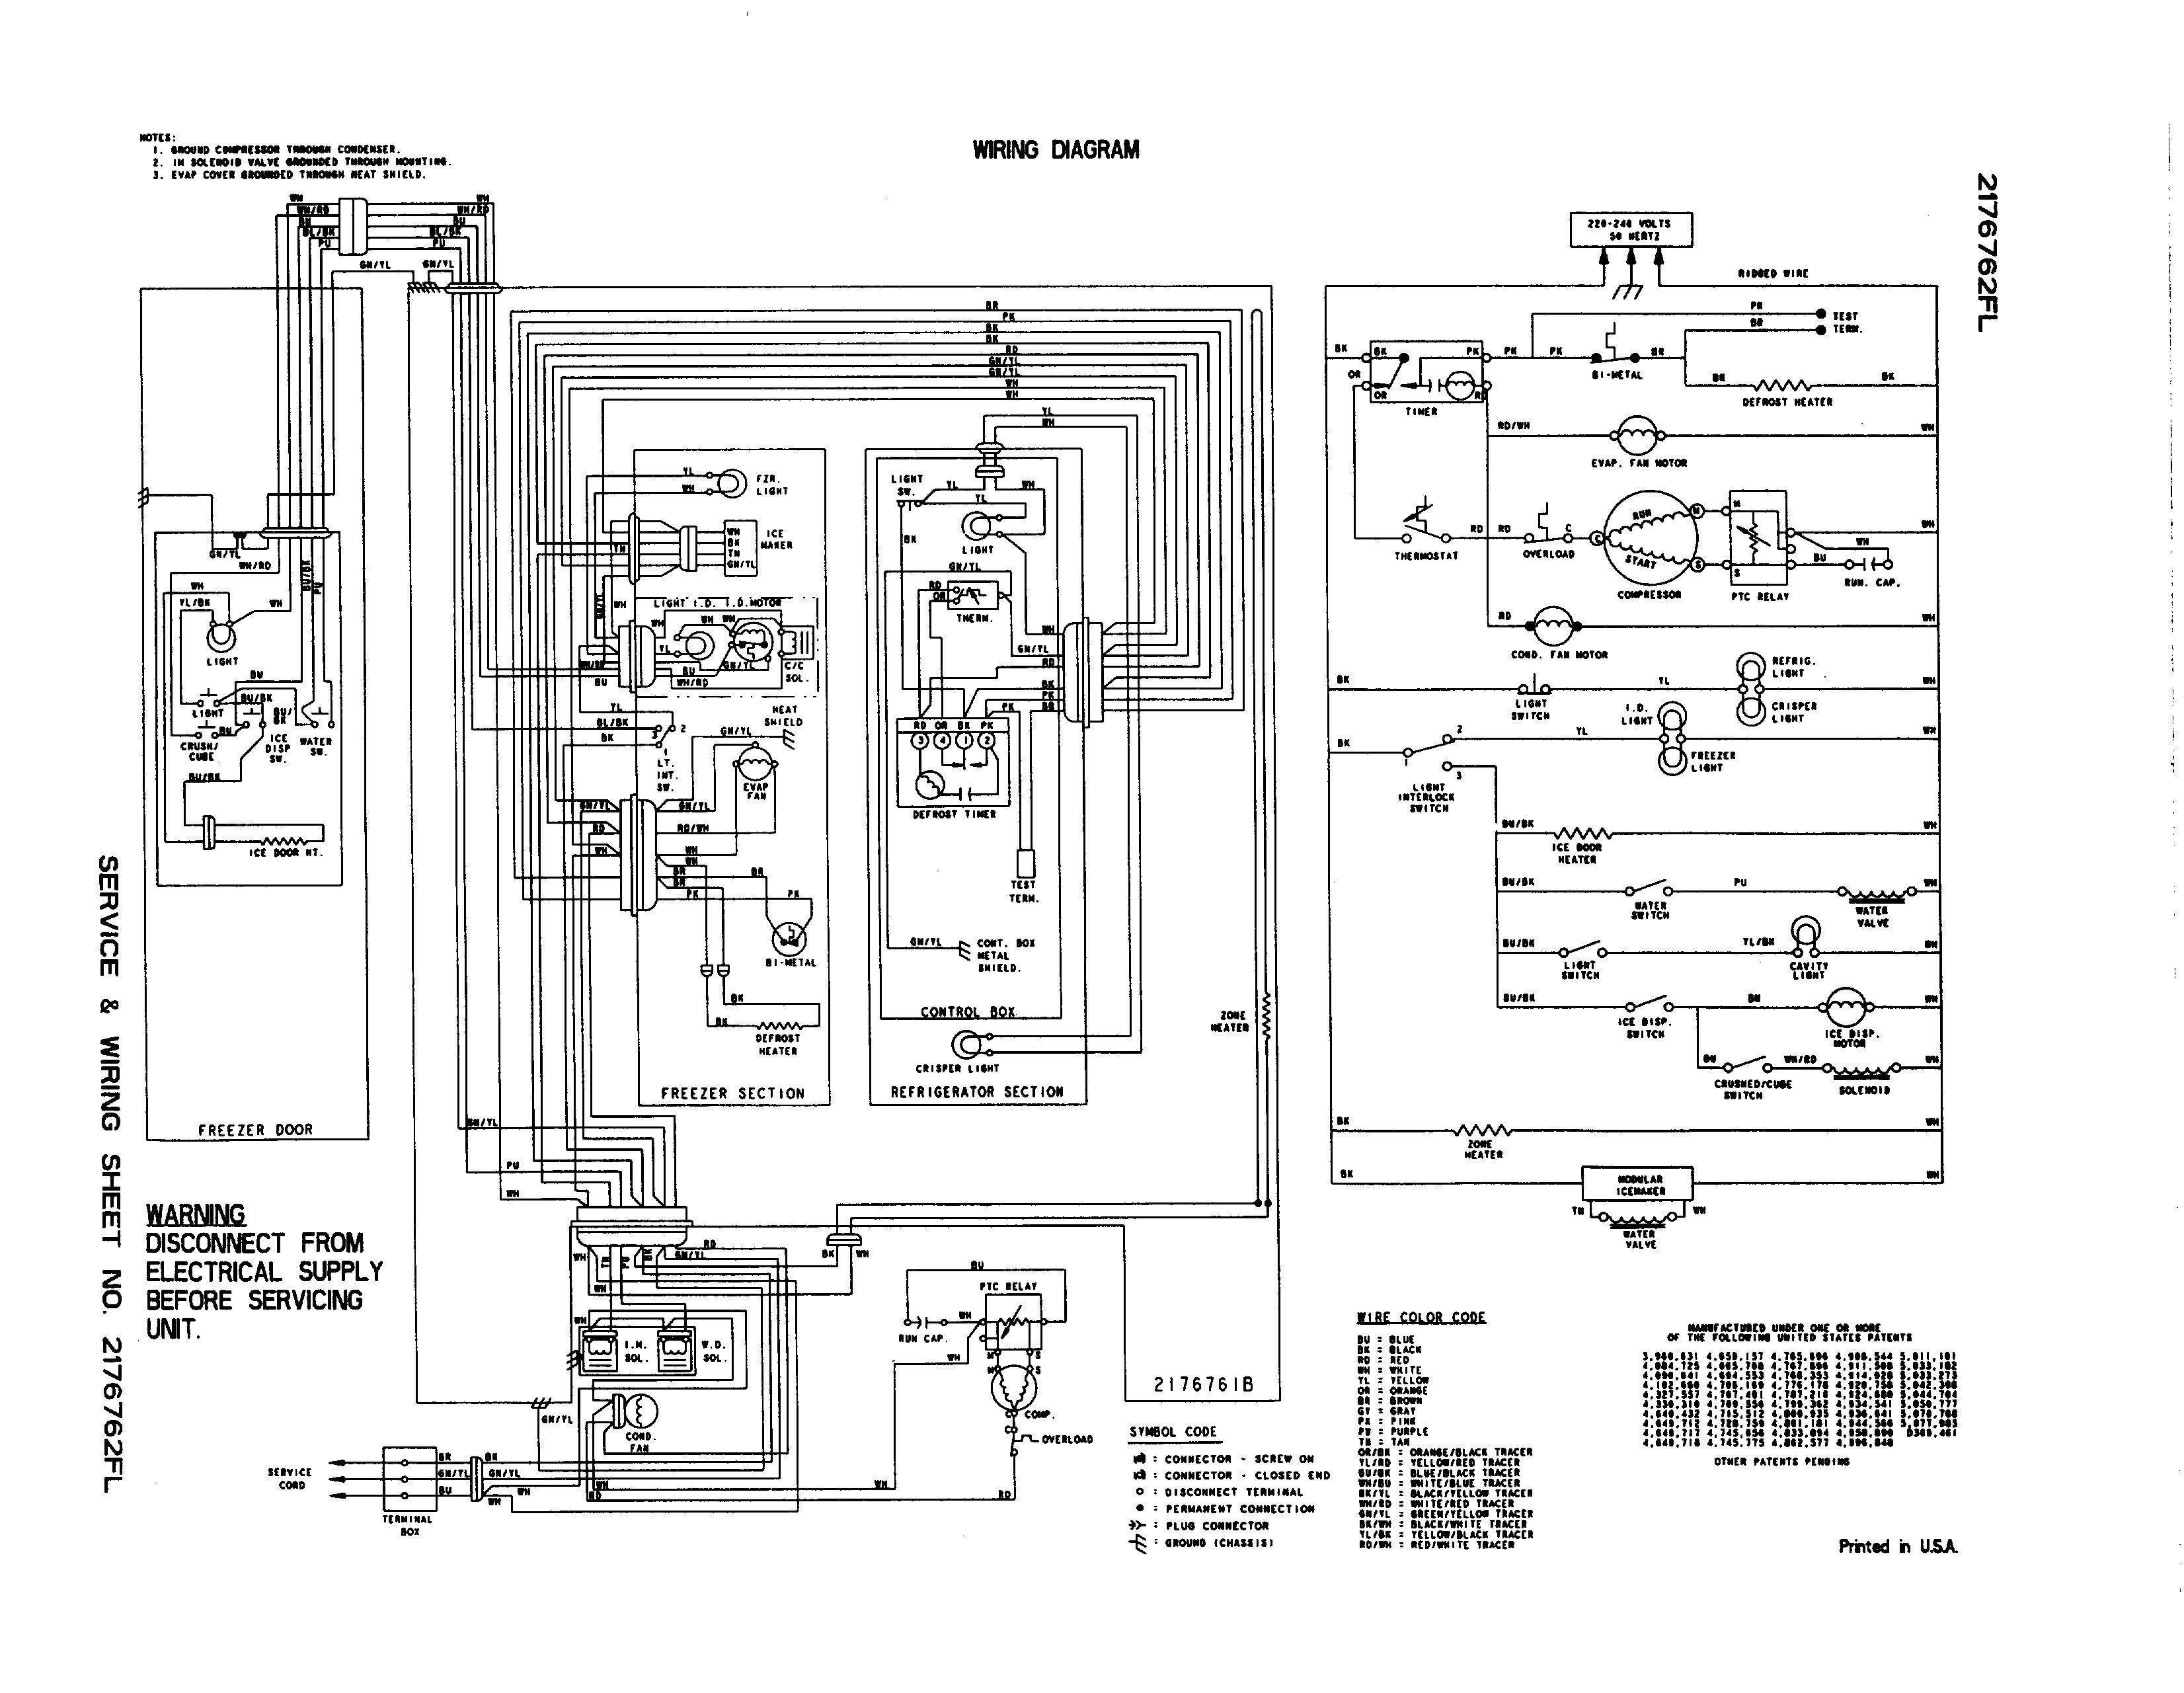 Pin by Diagram BacaMajalah on Tips References | Trailer ... Kenmore Washing Machine Motor Wiring Diagram on kenmore washing machine clutch, washing machine parts diagram, kenmore washing machine exploded view, estate washing machine wiring diagram, whirlpool stove wiring diagram, washing machine motor wiring diagram, samsung washing machine wiring diagram, kenmore washing machine repair, kenmore washing machine parts, admiral washing machine wiring diagram, kenmore washing machine installation, bosch washing machine wiring diagram, kitchenaid washing machine wiring diagram, kenmore washing machine motor, maytag washing machine wiring diagram, kenmore washing machine timer, kenmore electric dryer diagram, ge washing machine diagram, kenmore washing machine user manual, kenmore washing machine brake,